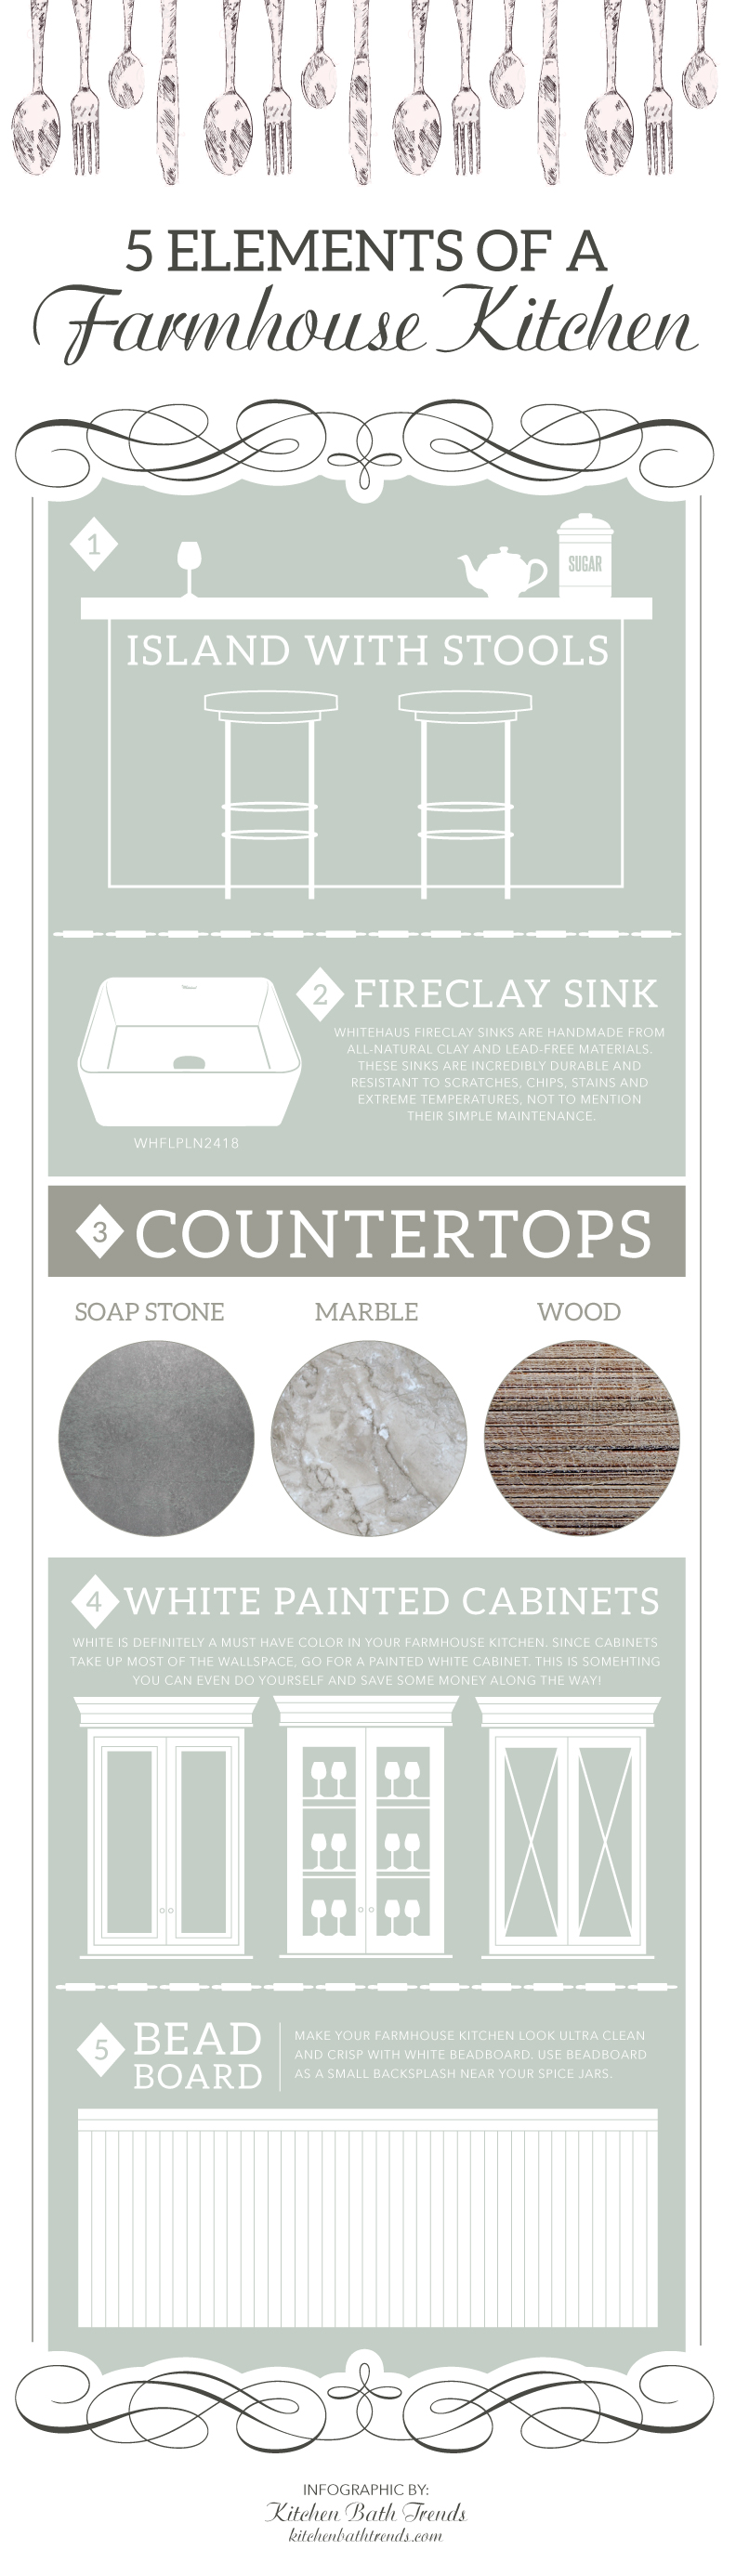 Infographic: 5 essentials for a Farmhouse Kitchen | Kitchen Bath Trends